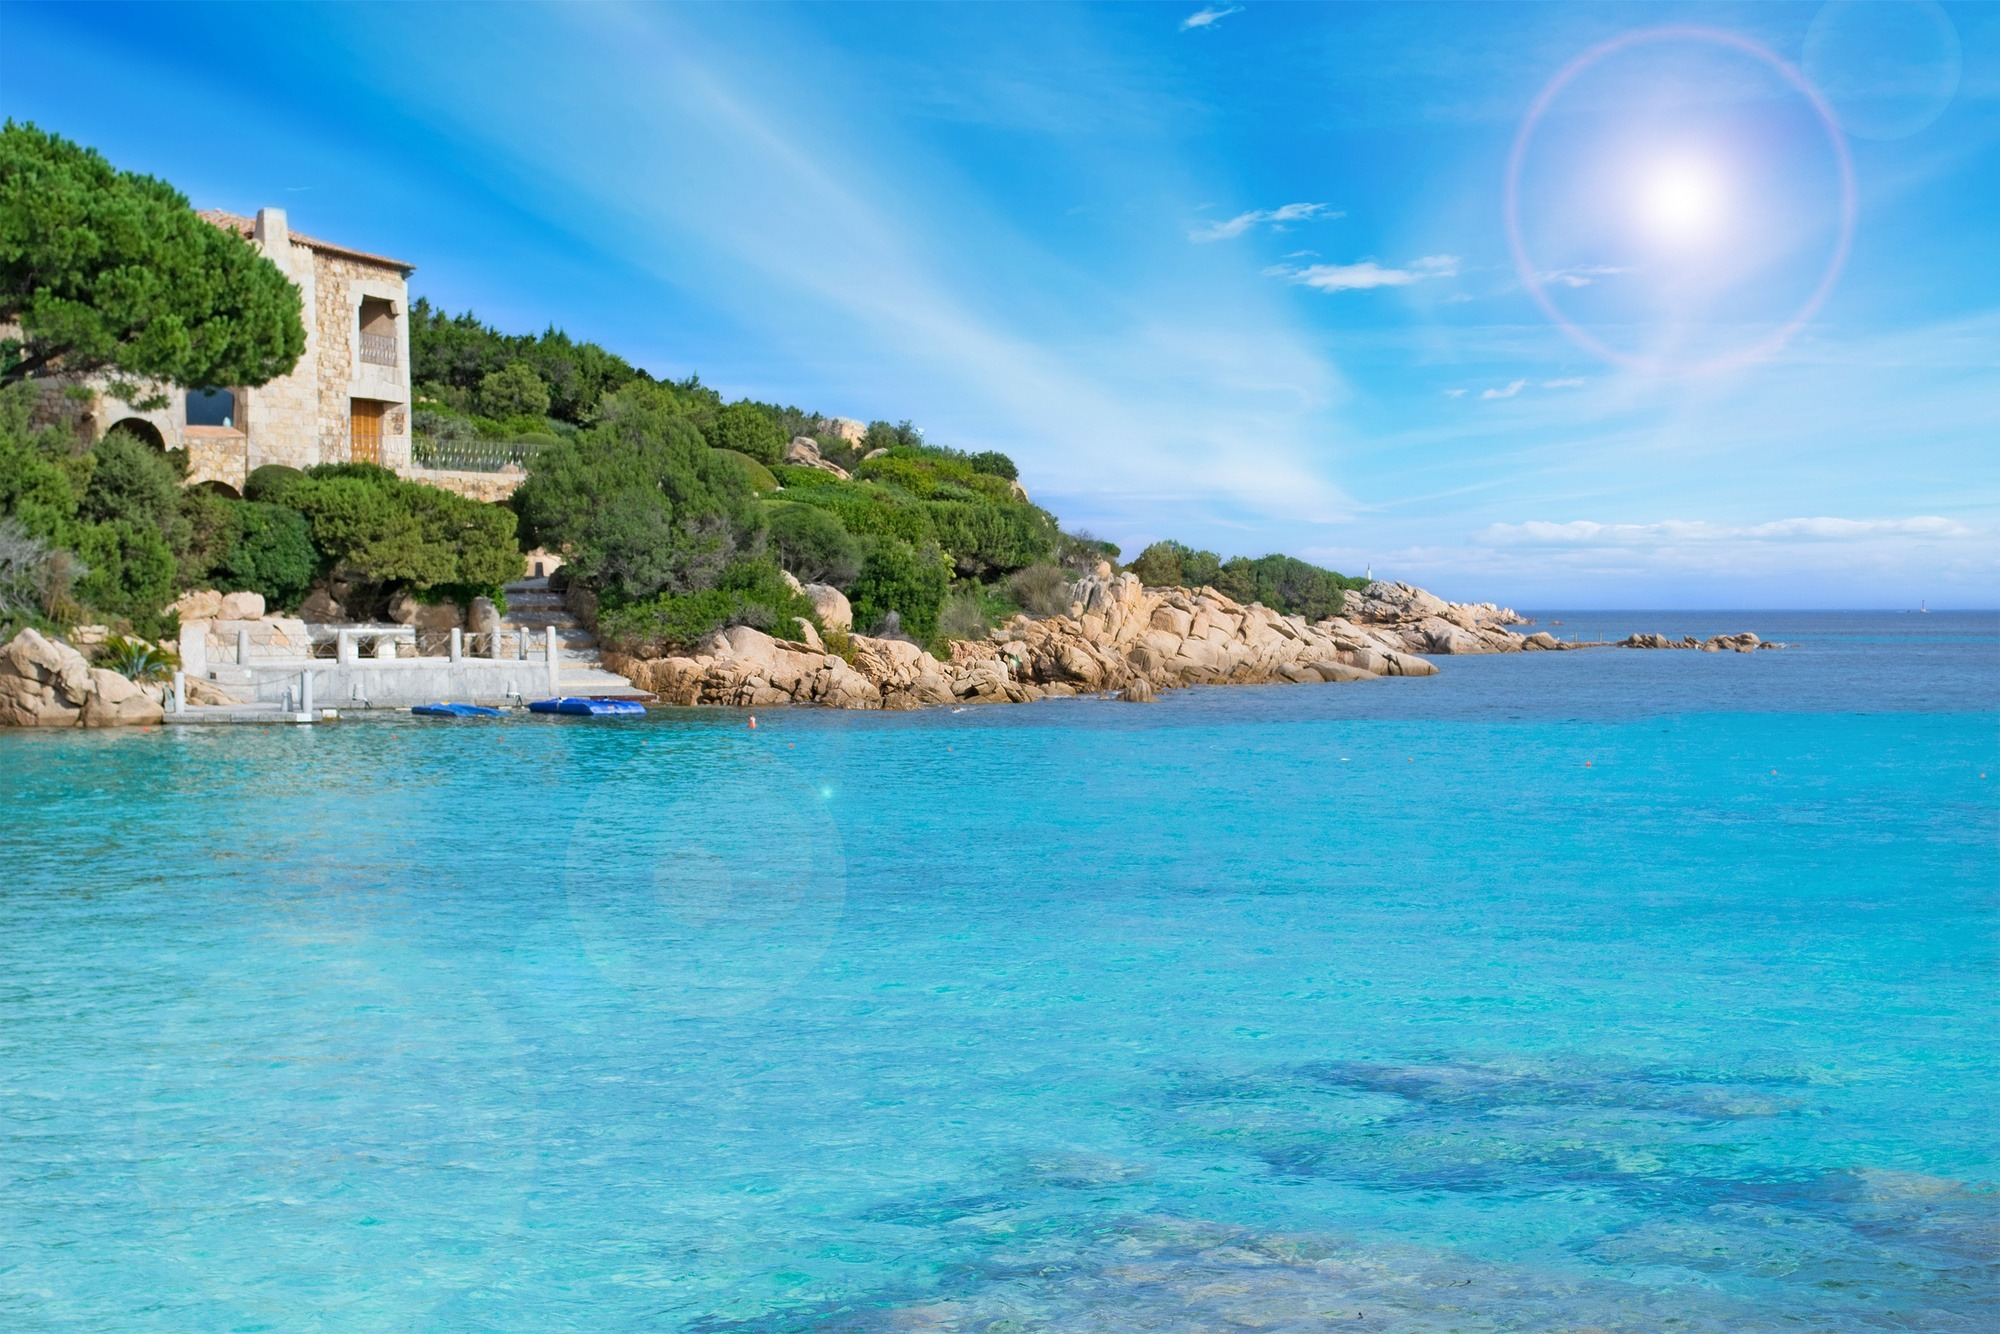 Costa smeralda sardinia hotels and beaches for your holiday for Arredi costa smeralda